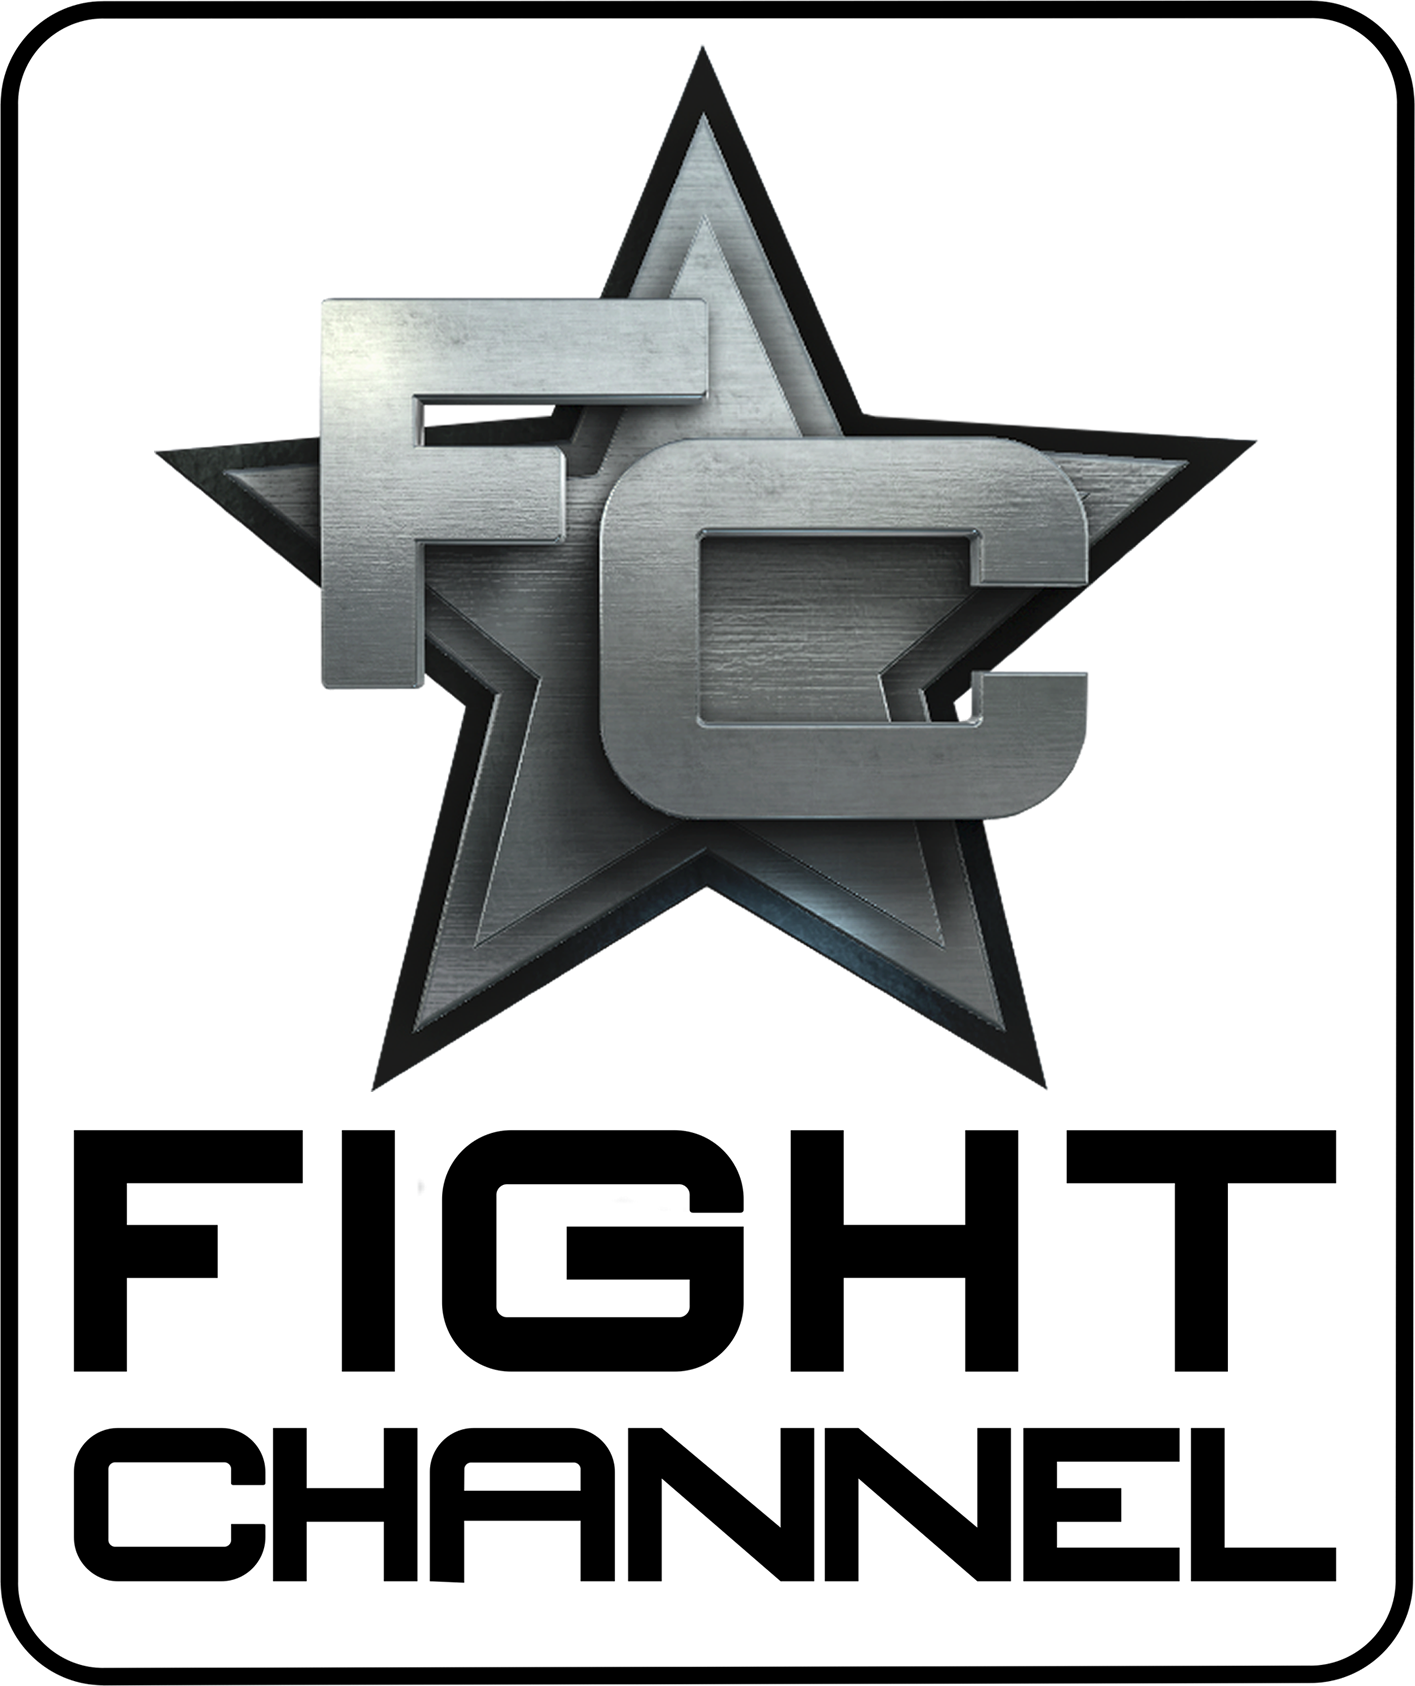 FIGHTCHANNEL LOGO